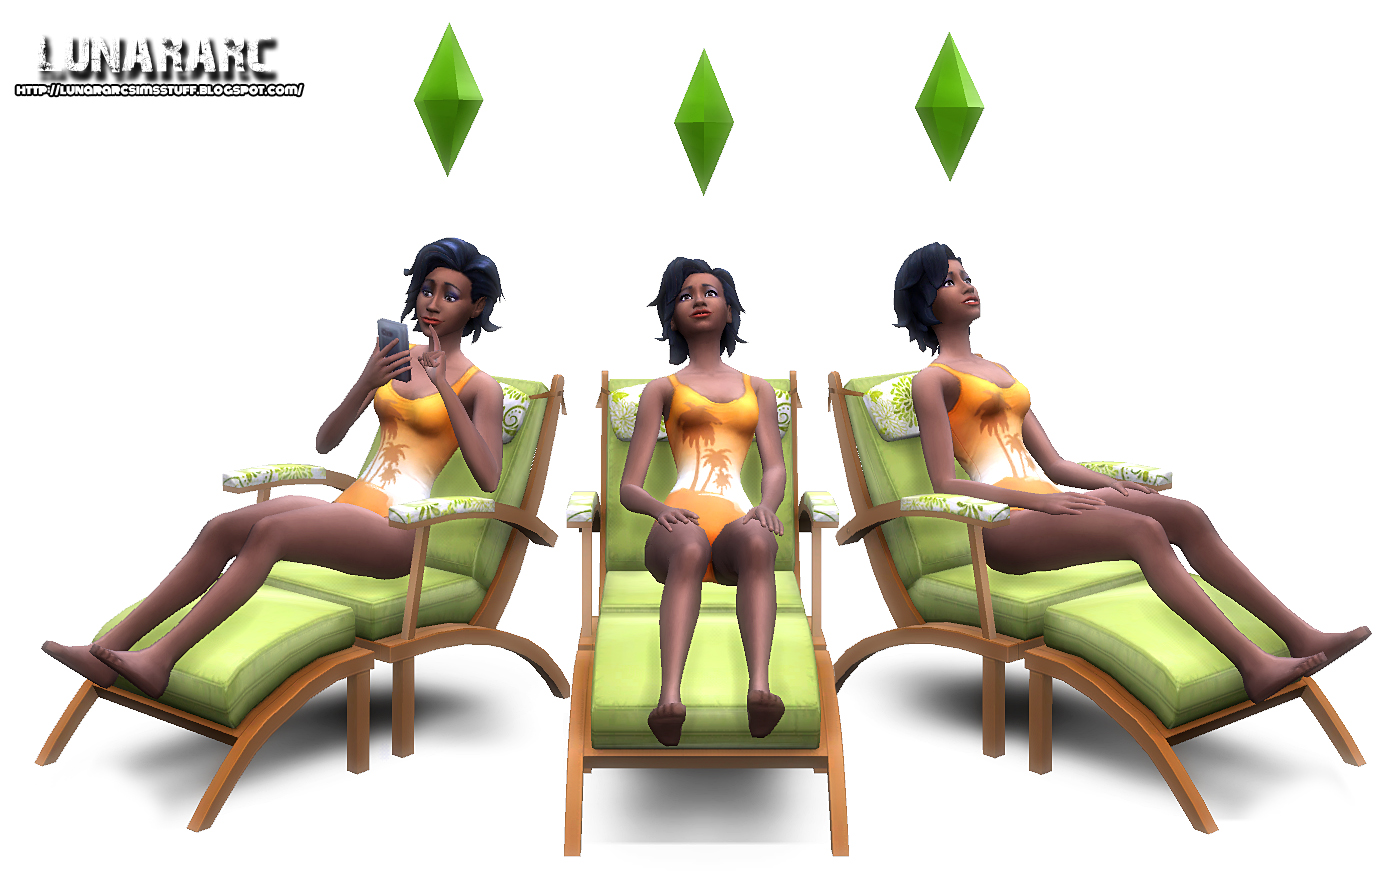 Hanging Chair The Sims 4 Bean Bag Chairs For Adults Lunararc Luana Lounge